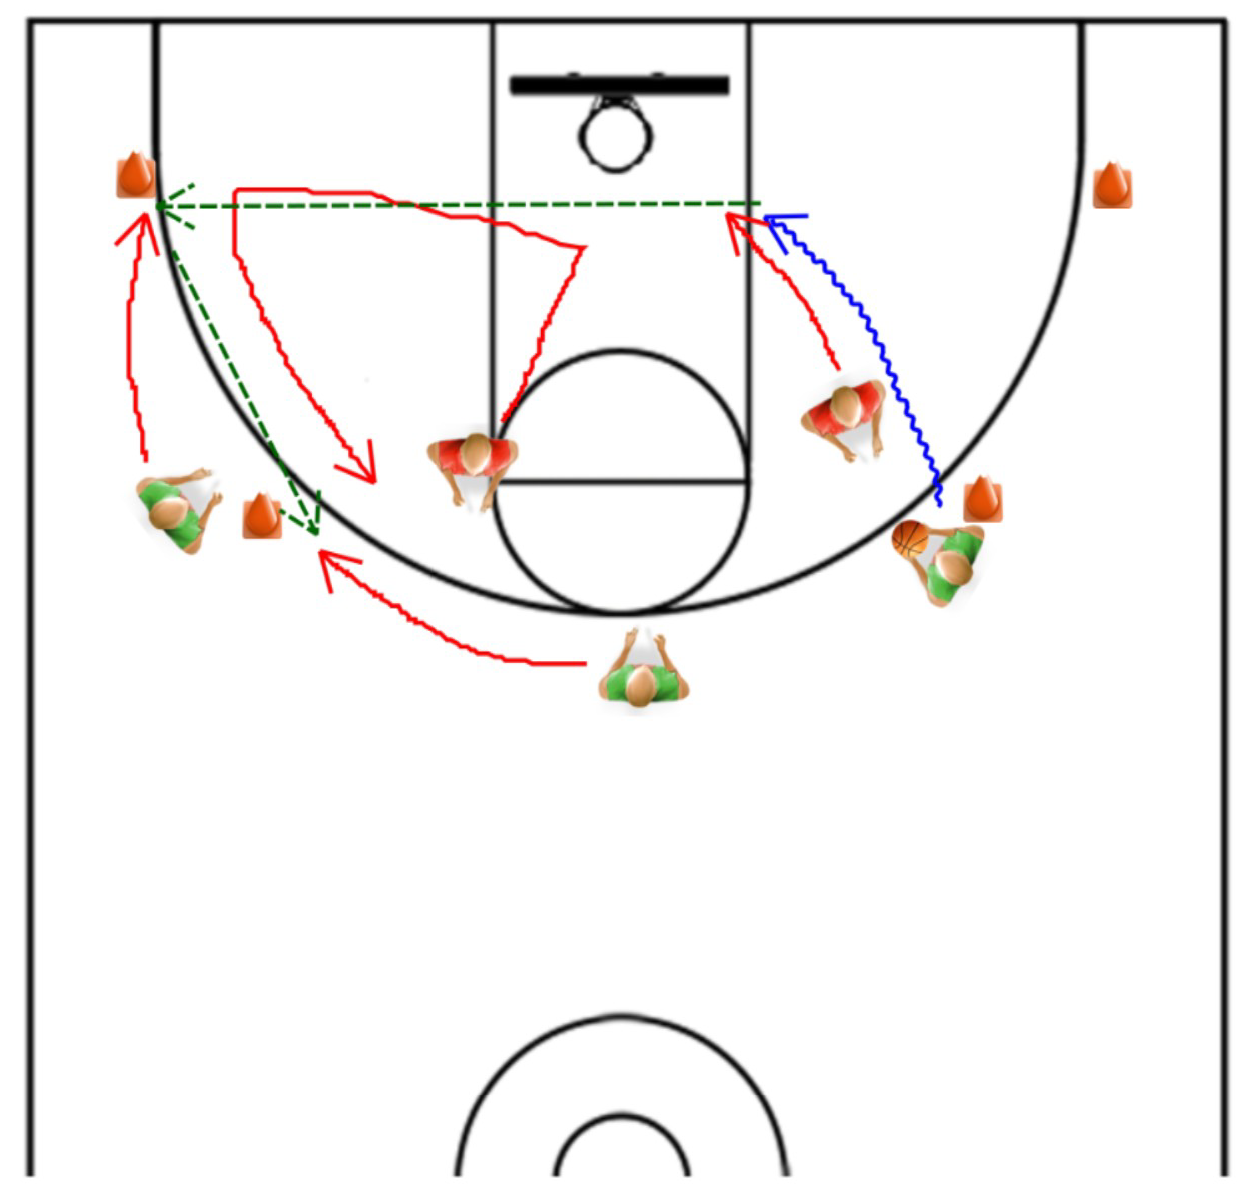 More Basketball Offense - Mastering the Drive and Kick Part 2